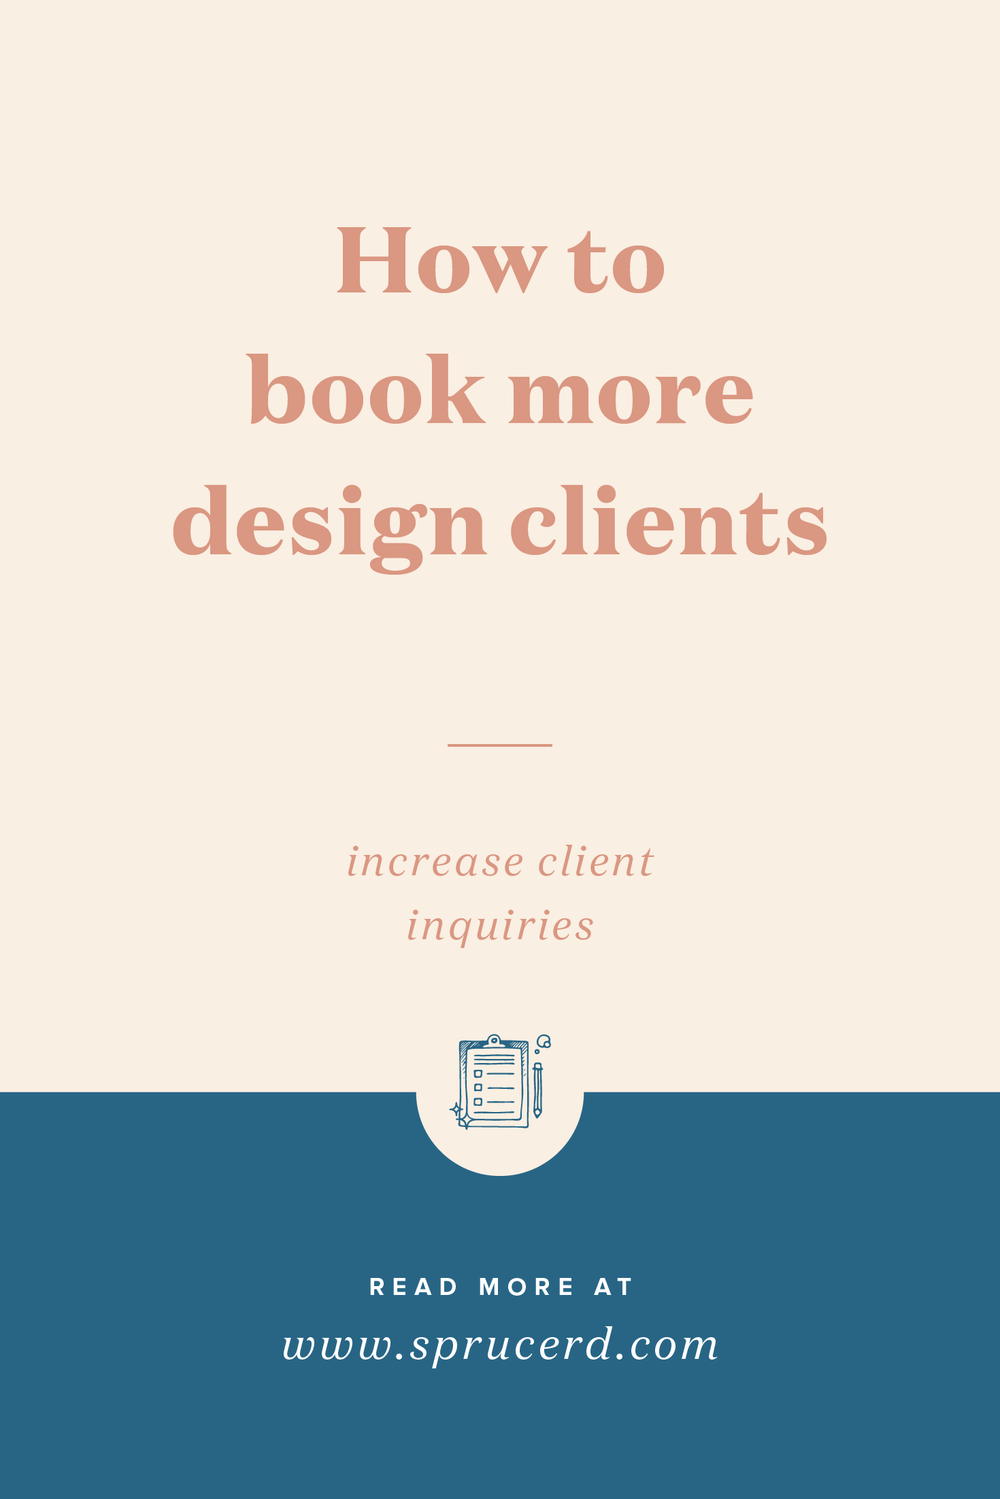 How to book more clients | Spruce Rd. | Does it feel like no matter what you do, your website still won't bring in enough client leads? I'm sharing how to increase design client leads for freelancers.